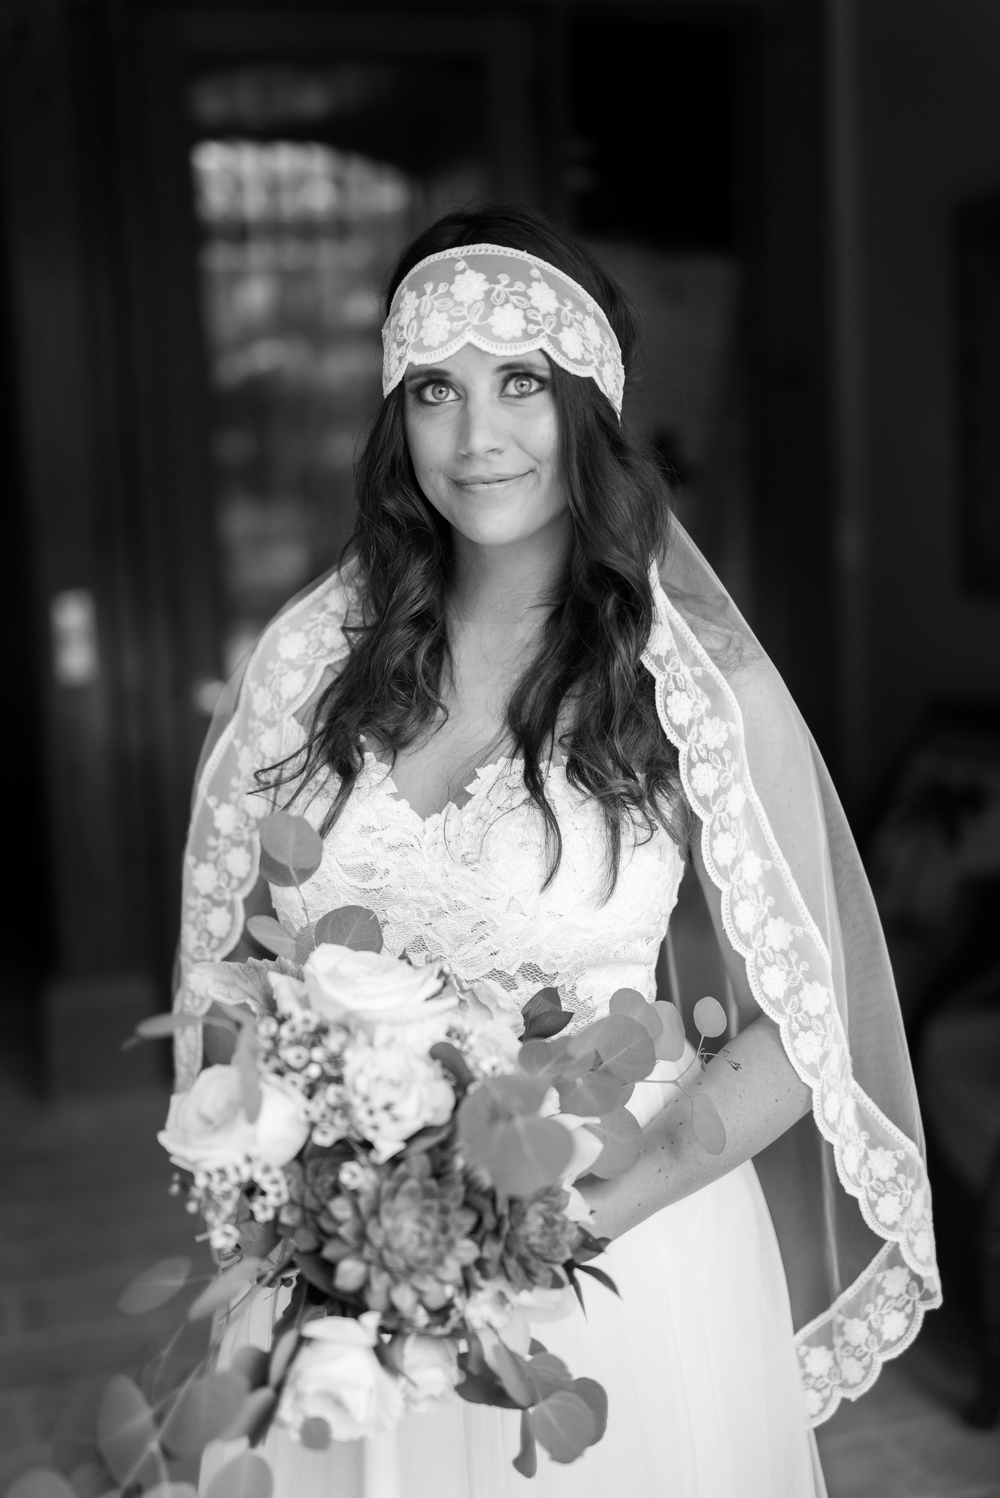 Adrienne&Caleb'sWedding | Highlights-0078.jpg